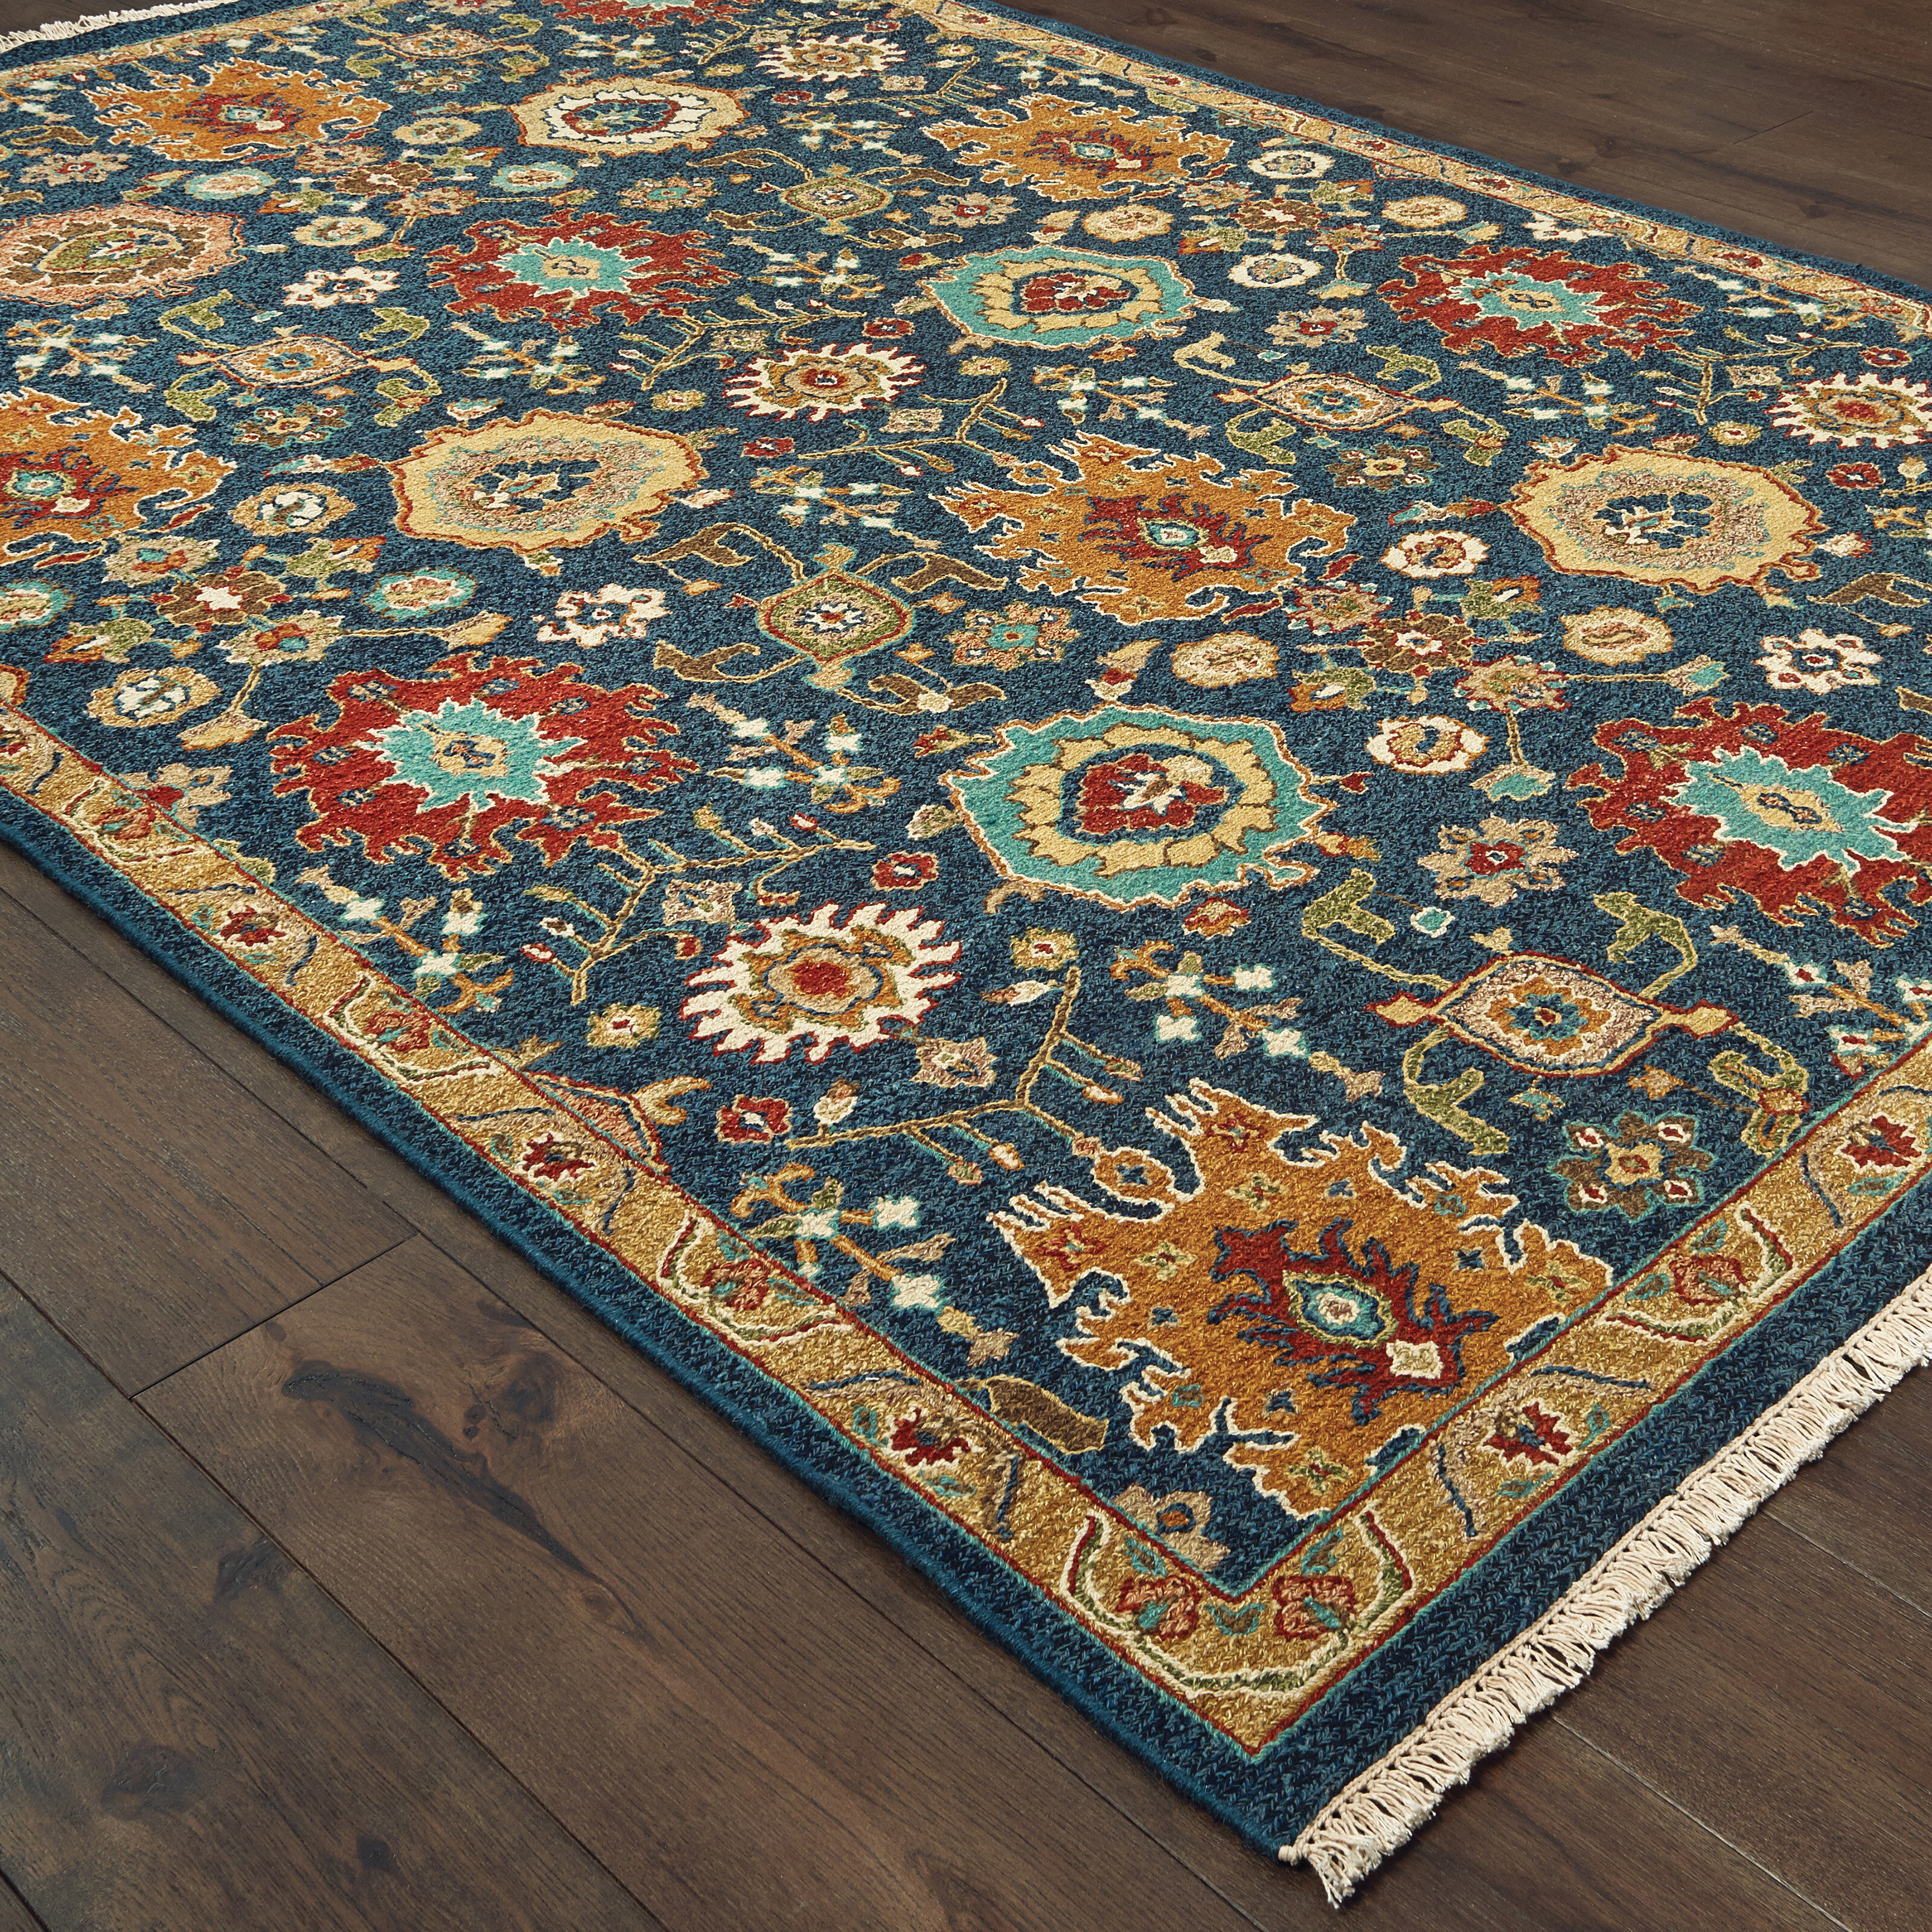 Tommy Bahama Home Angora Oriental Handmade Flatweave Wool Navy Blue Brown Area Rug Wayfair